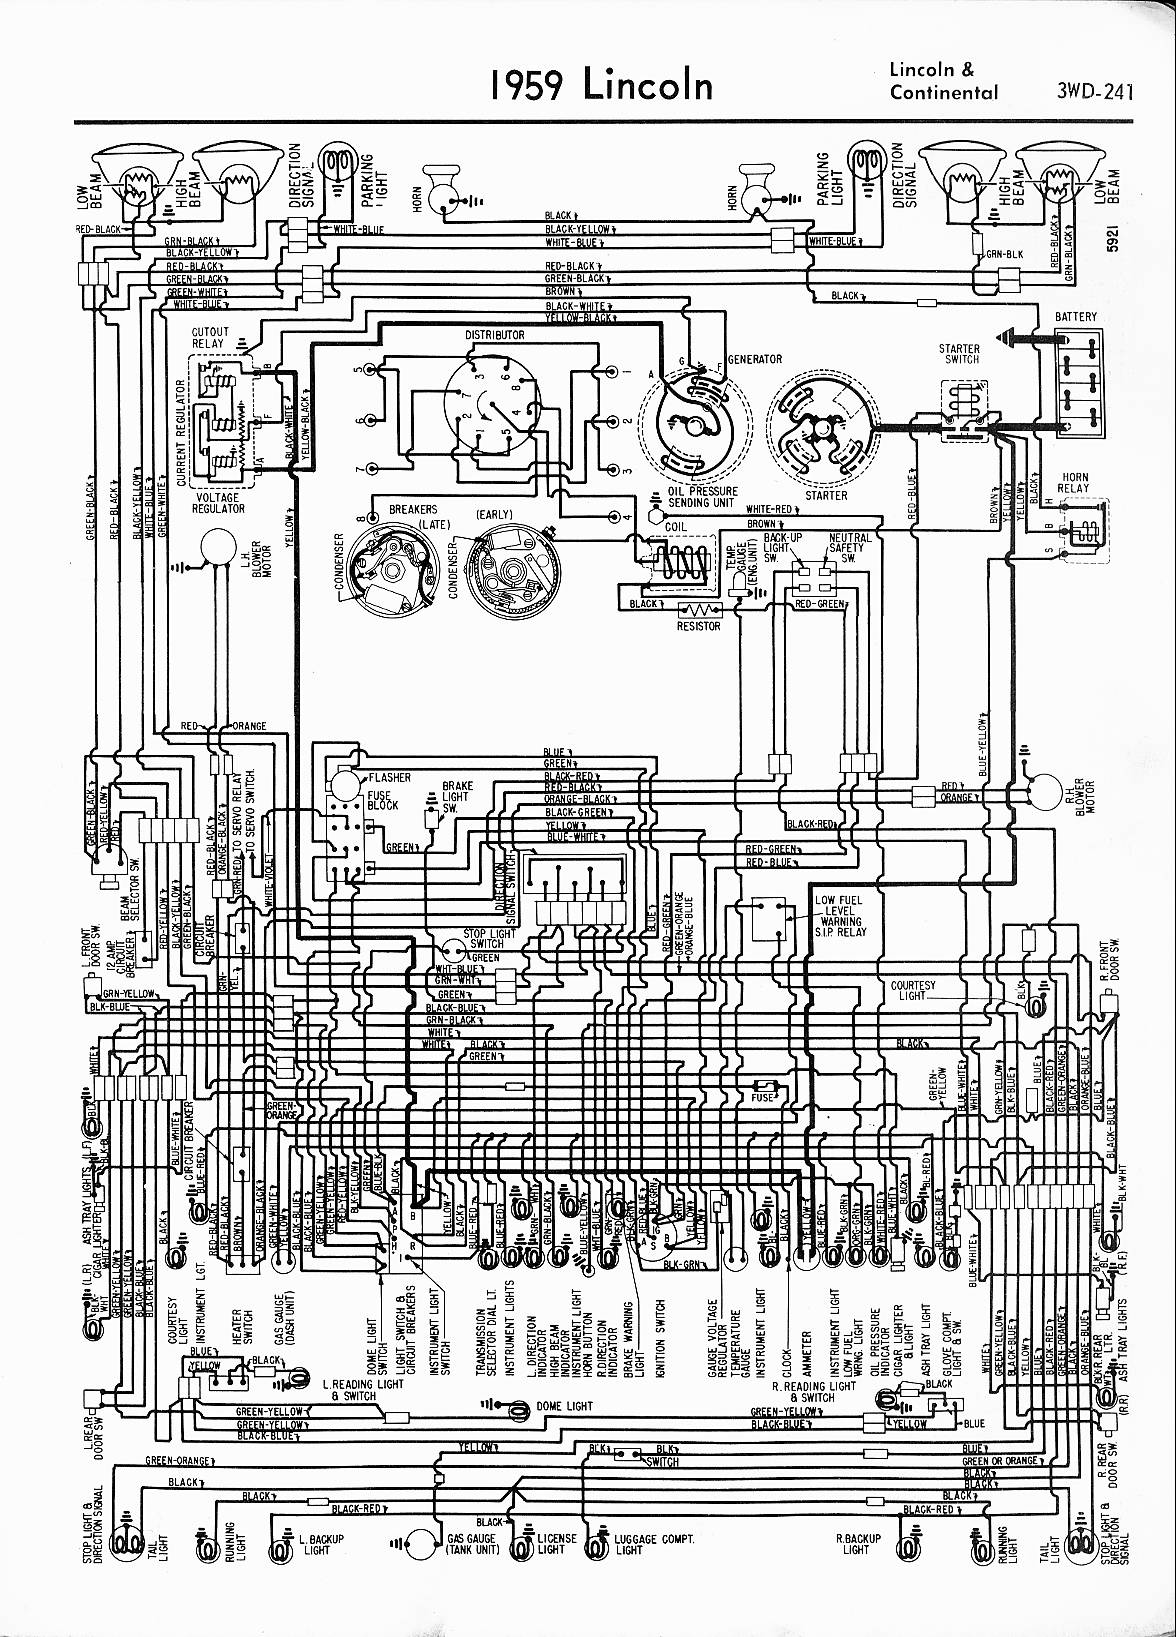 1969 Lincoln Wiring Diagram Schematics 1978 El Camino Fuse Box Schematic Continental Data Schema